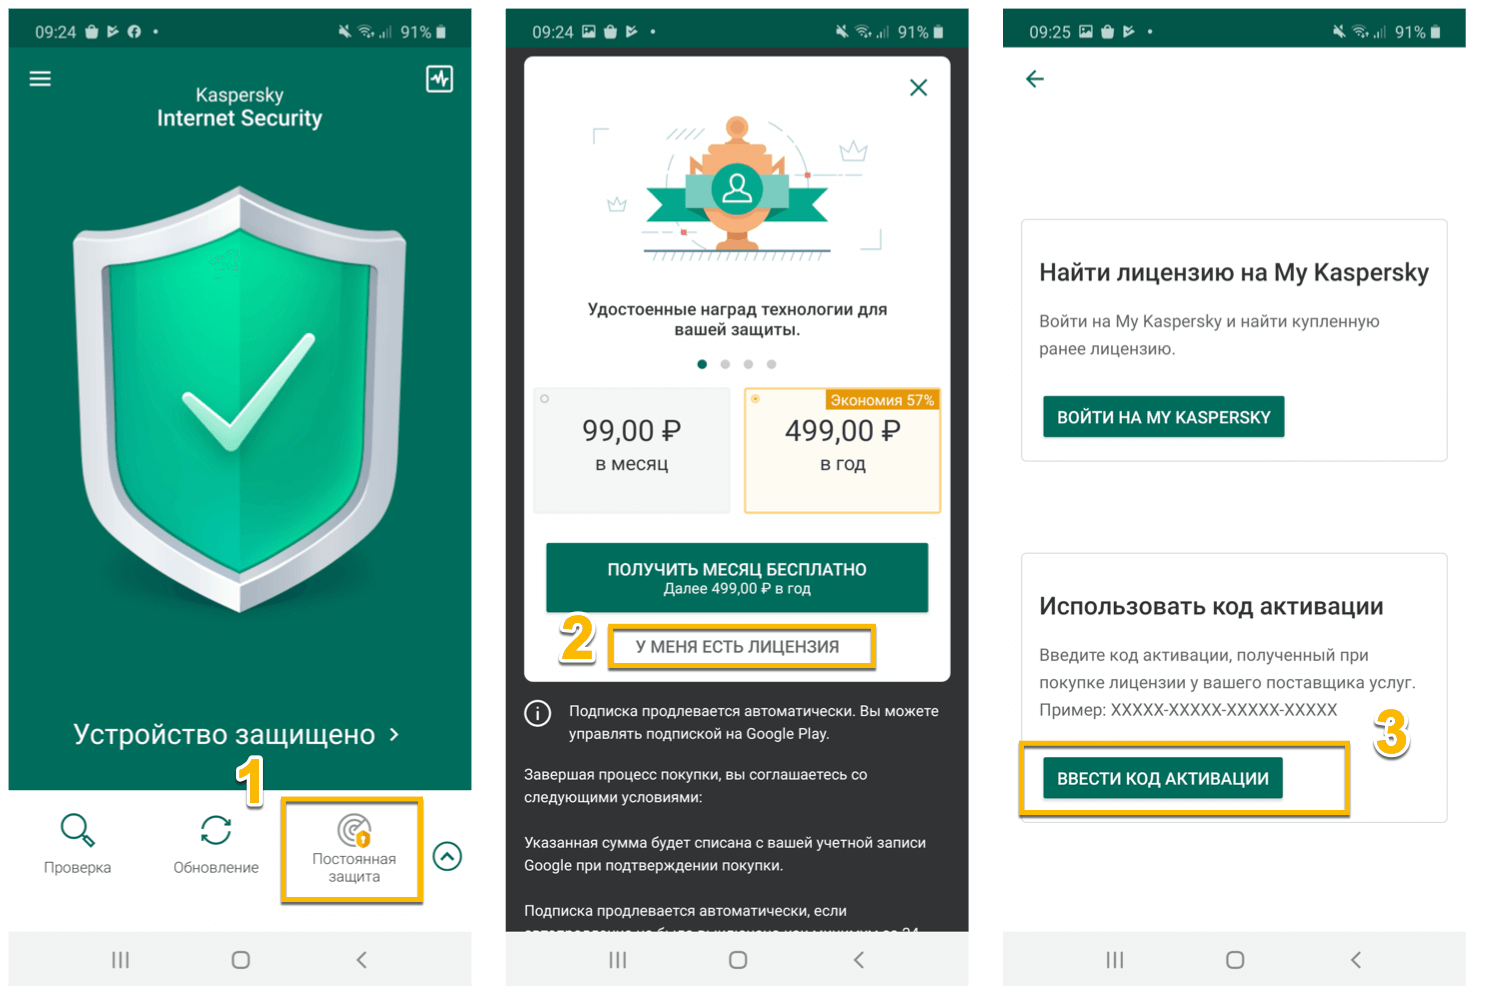 Kaspersky Internet Security Premium for Android - free license for 3 months